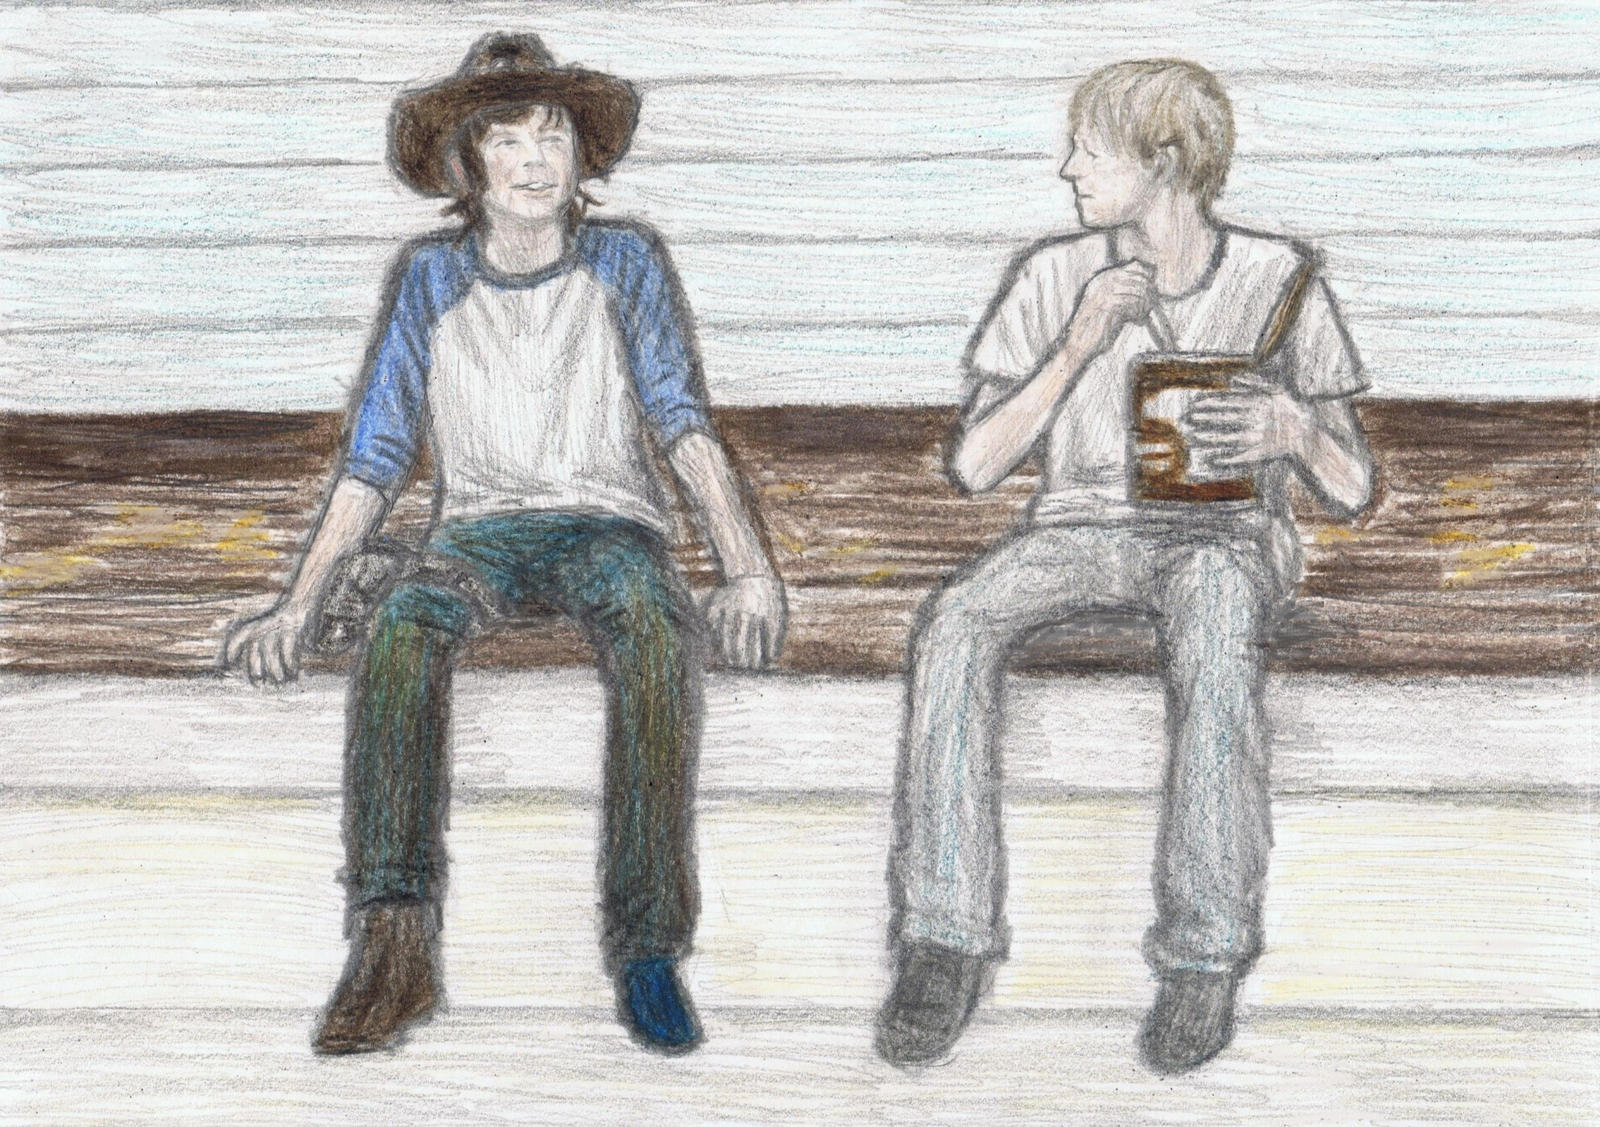 Carl Grimes with Mingus Reedus by gagambo